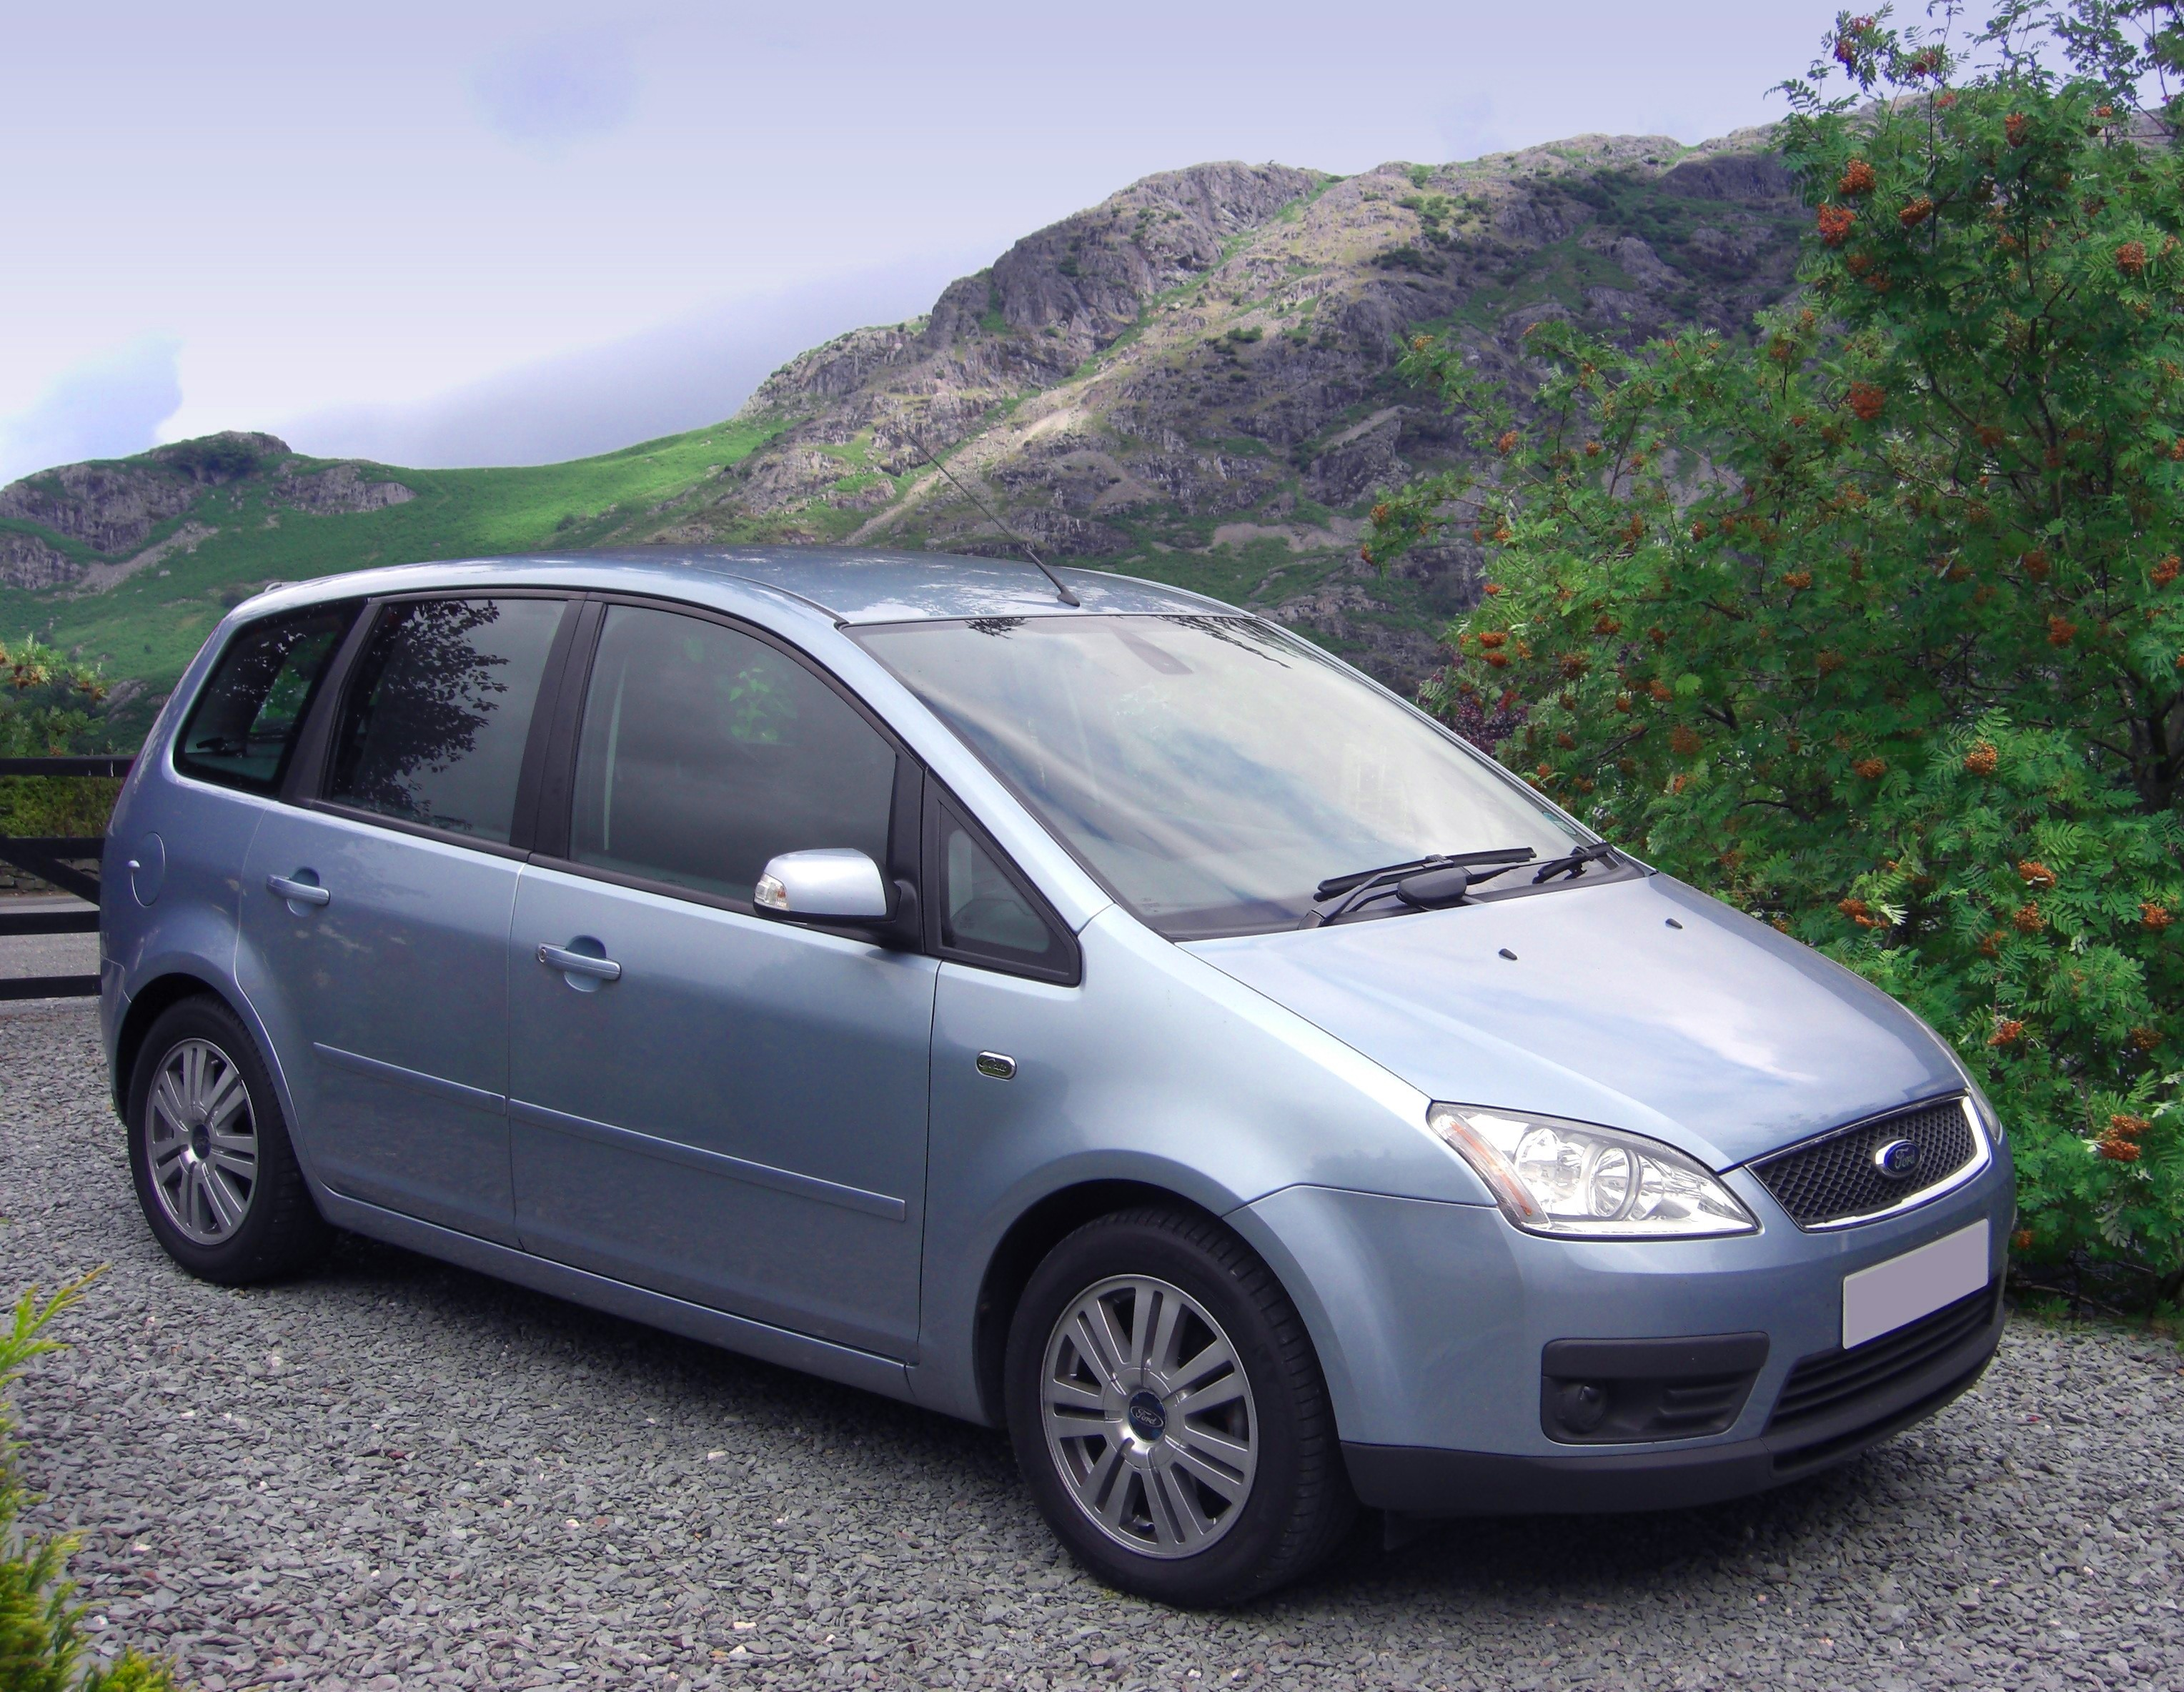 ford c-max images #10